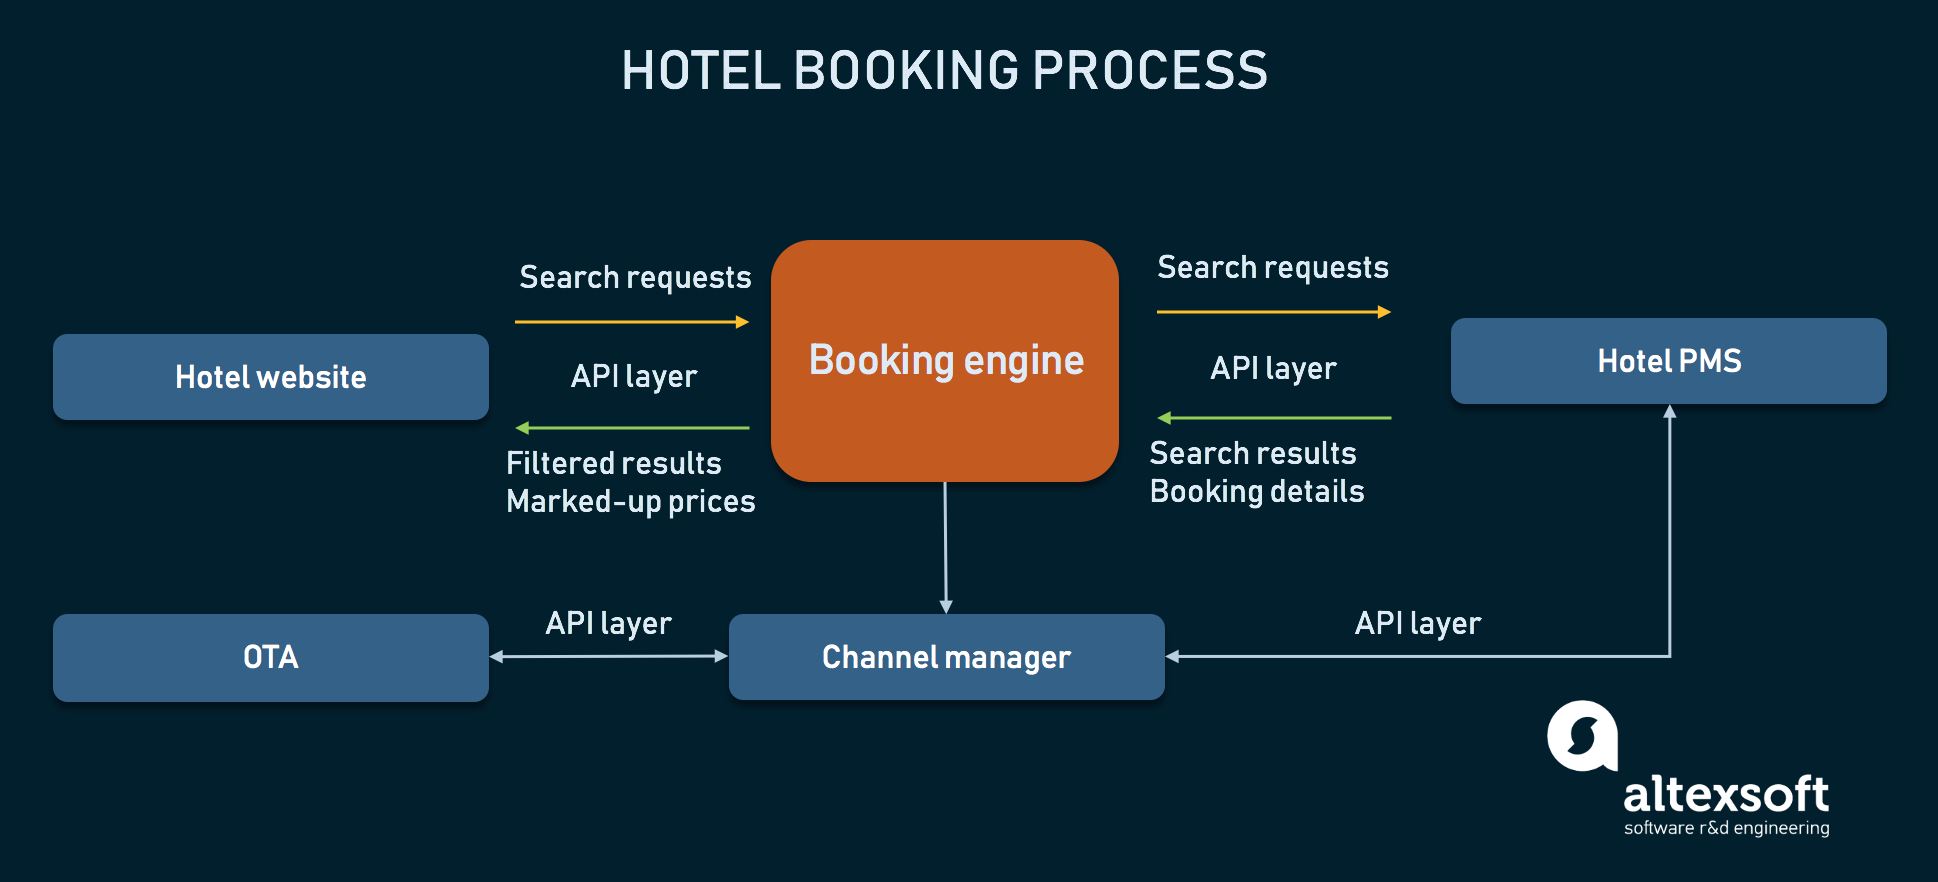 Systems taking part in direct hotel distribution